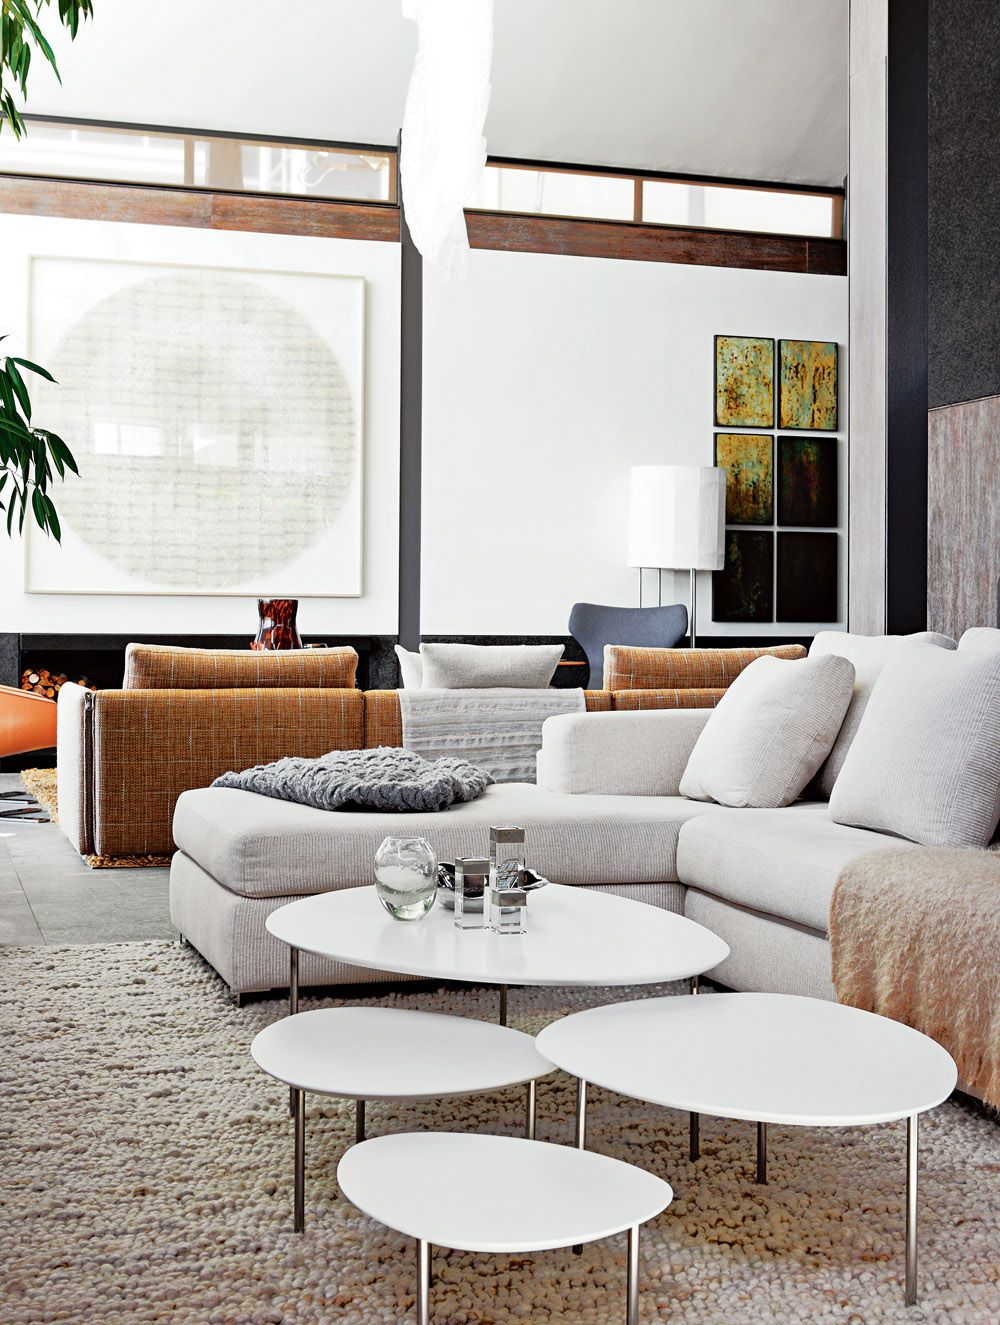 Cape Town Waterfront House Living Room With STUA Eclipse Tables A Jon Gasca